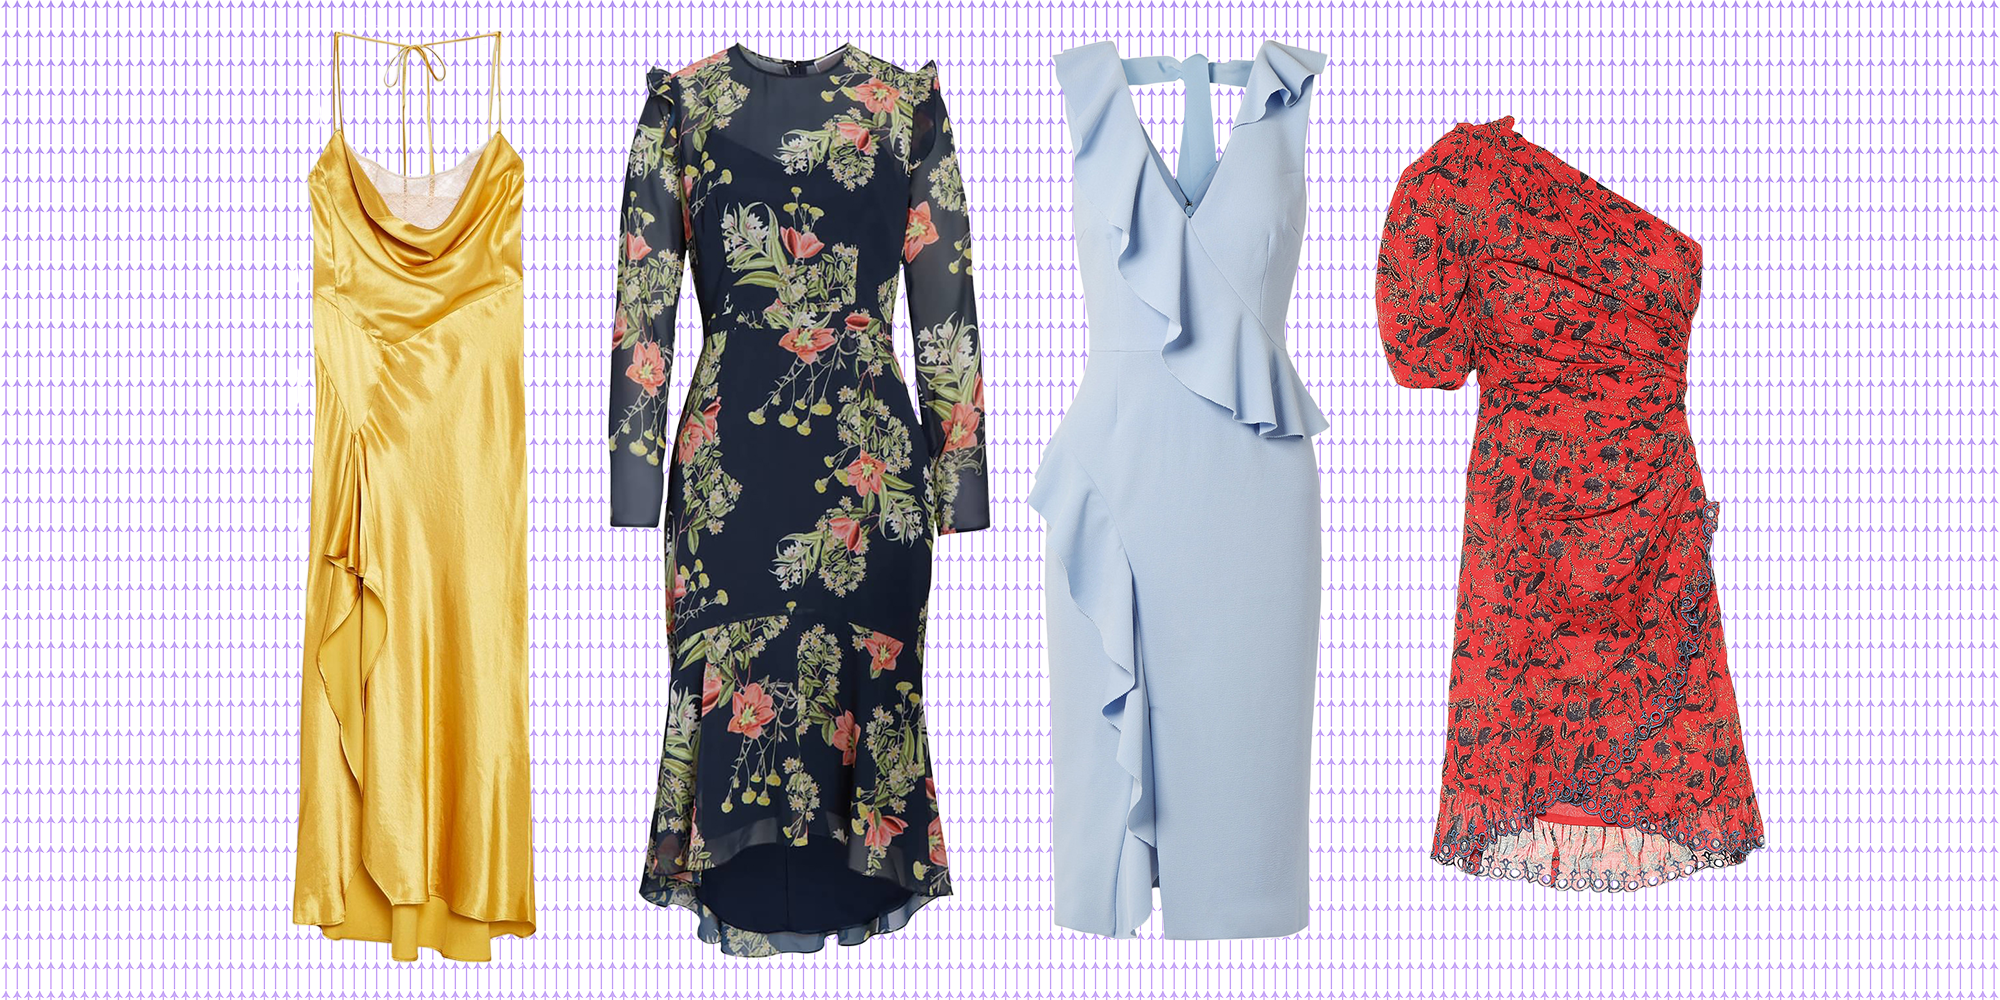 Spring Wedding Guest Dresses.11 Wedding Guest Dresses For Spring 2019 To Snap Up Before They Go